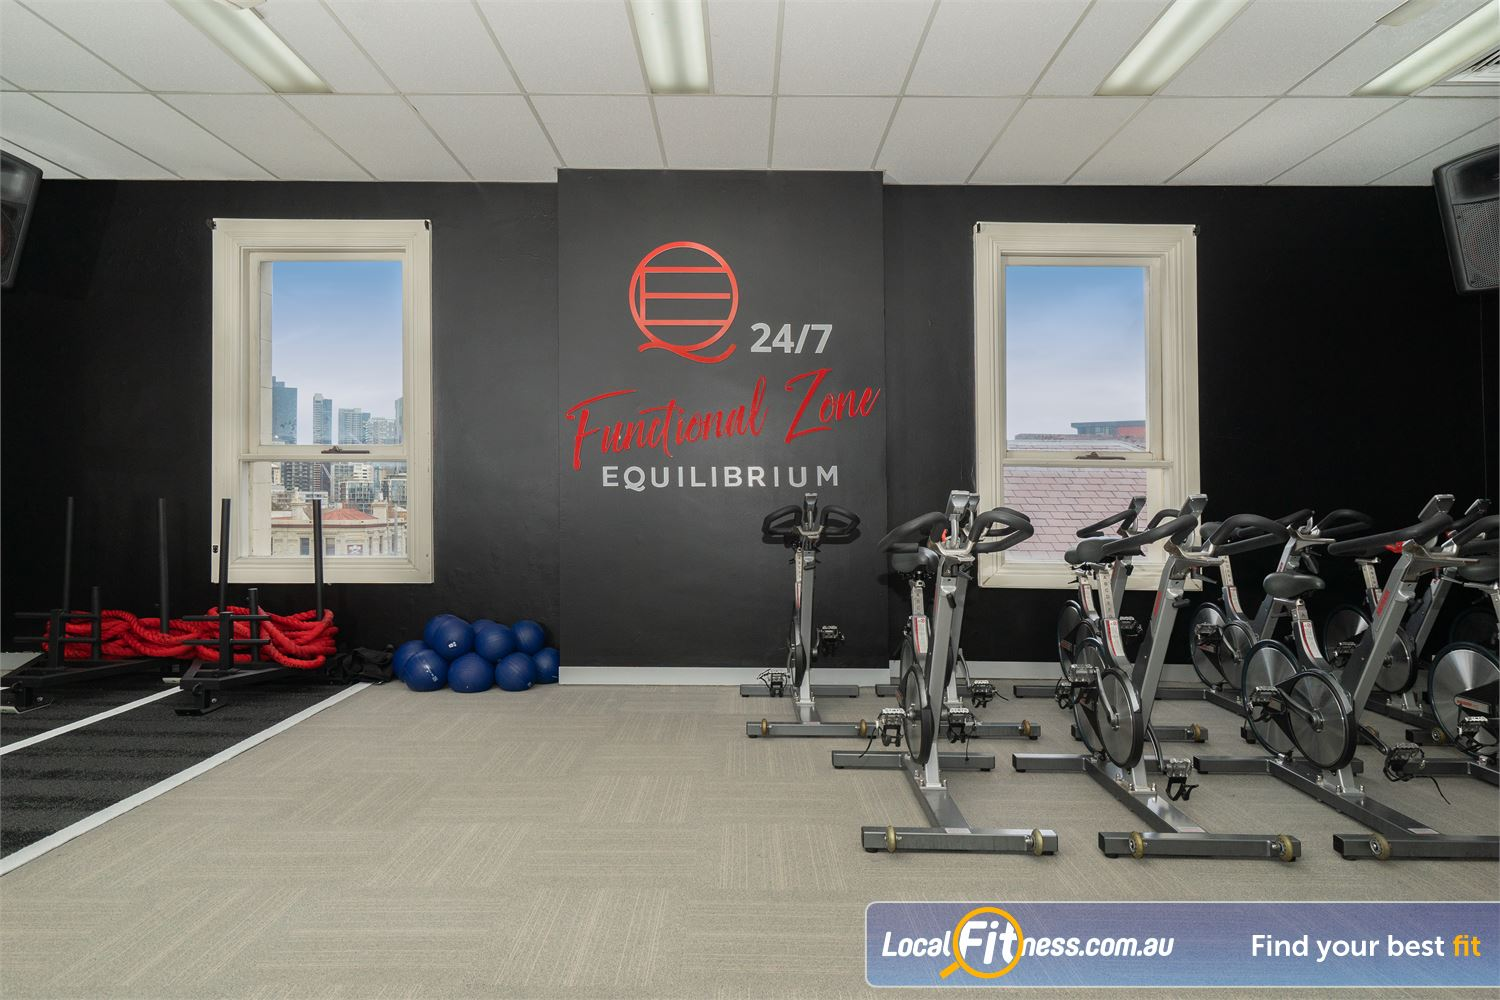 Equilibrium Health & Fitness 24/7 Near Parkville The fully equipped functional zone in North Melbourne.